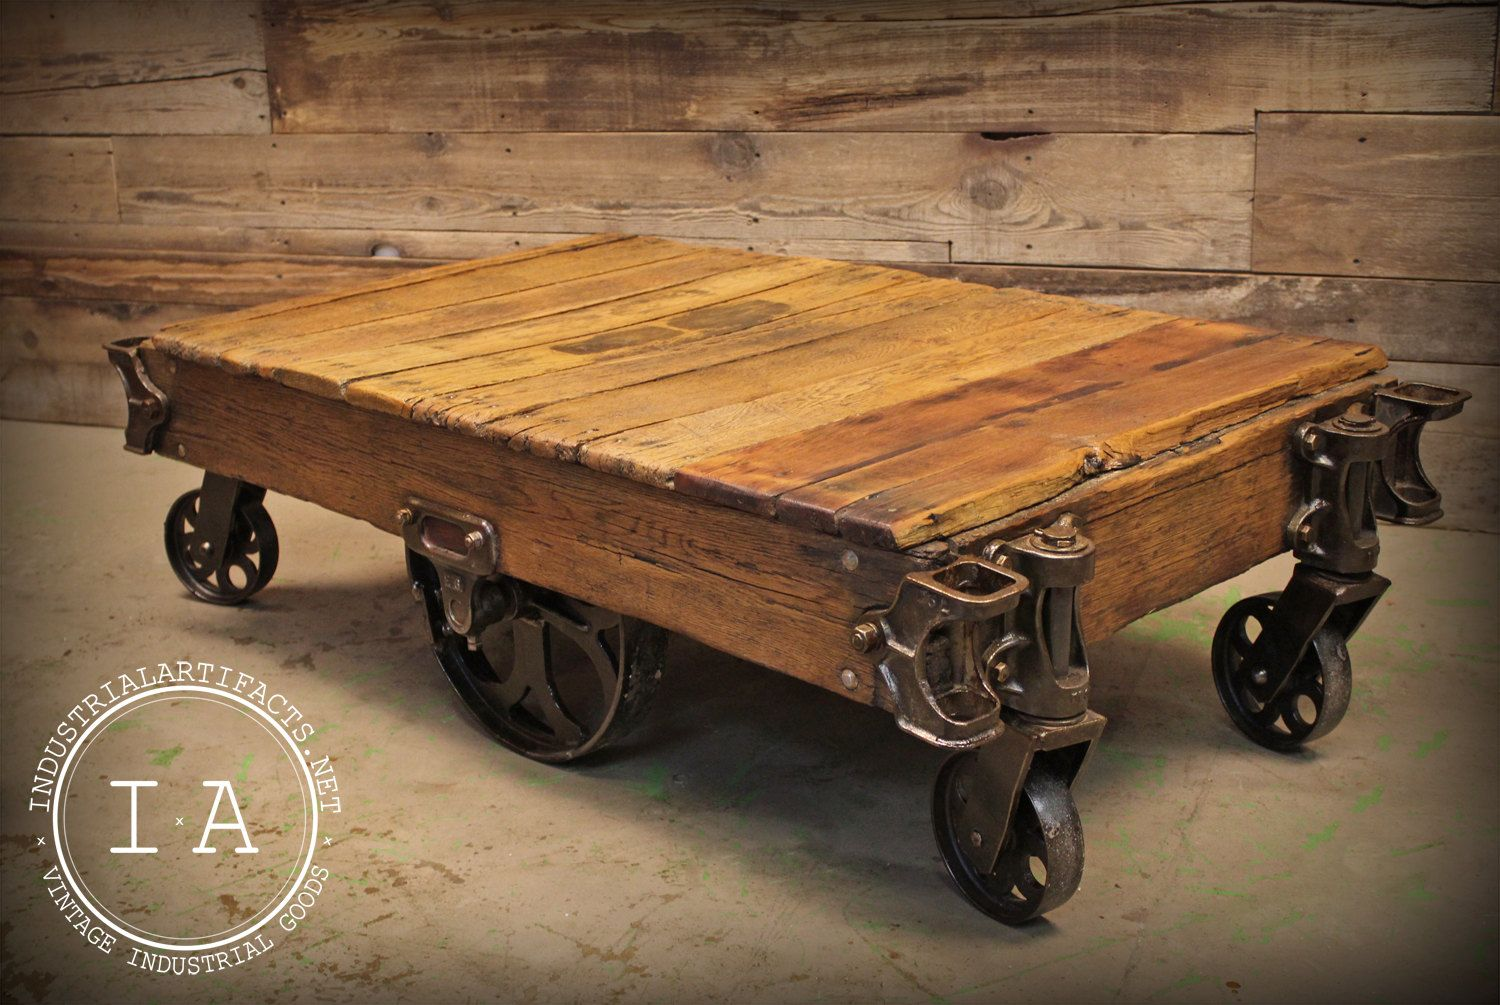 To Know More About Vintage 6 Wheel Factory Rail Yard Rocker Cart Coffee Table Visit Sumally A Social Network That Gathers Together All The